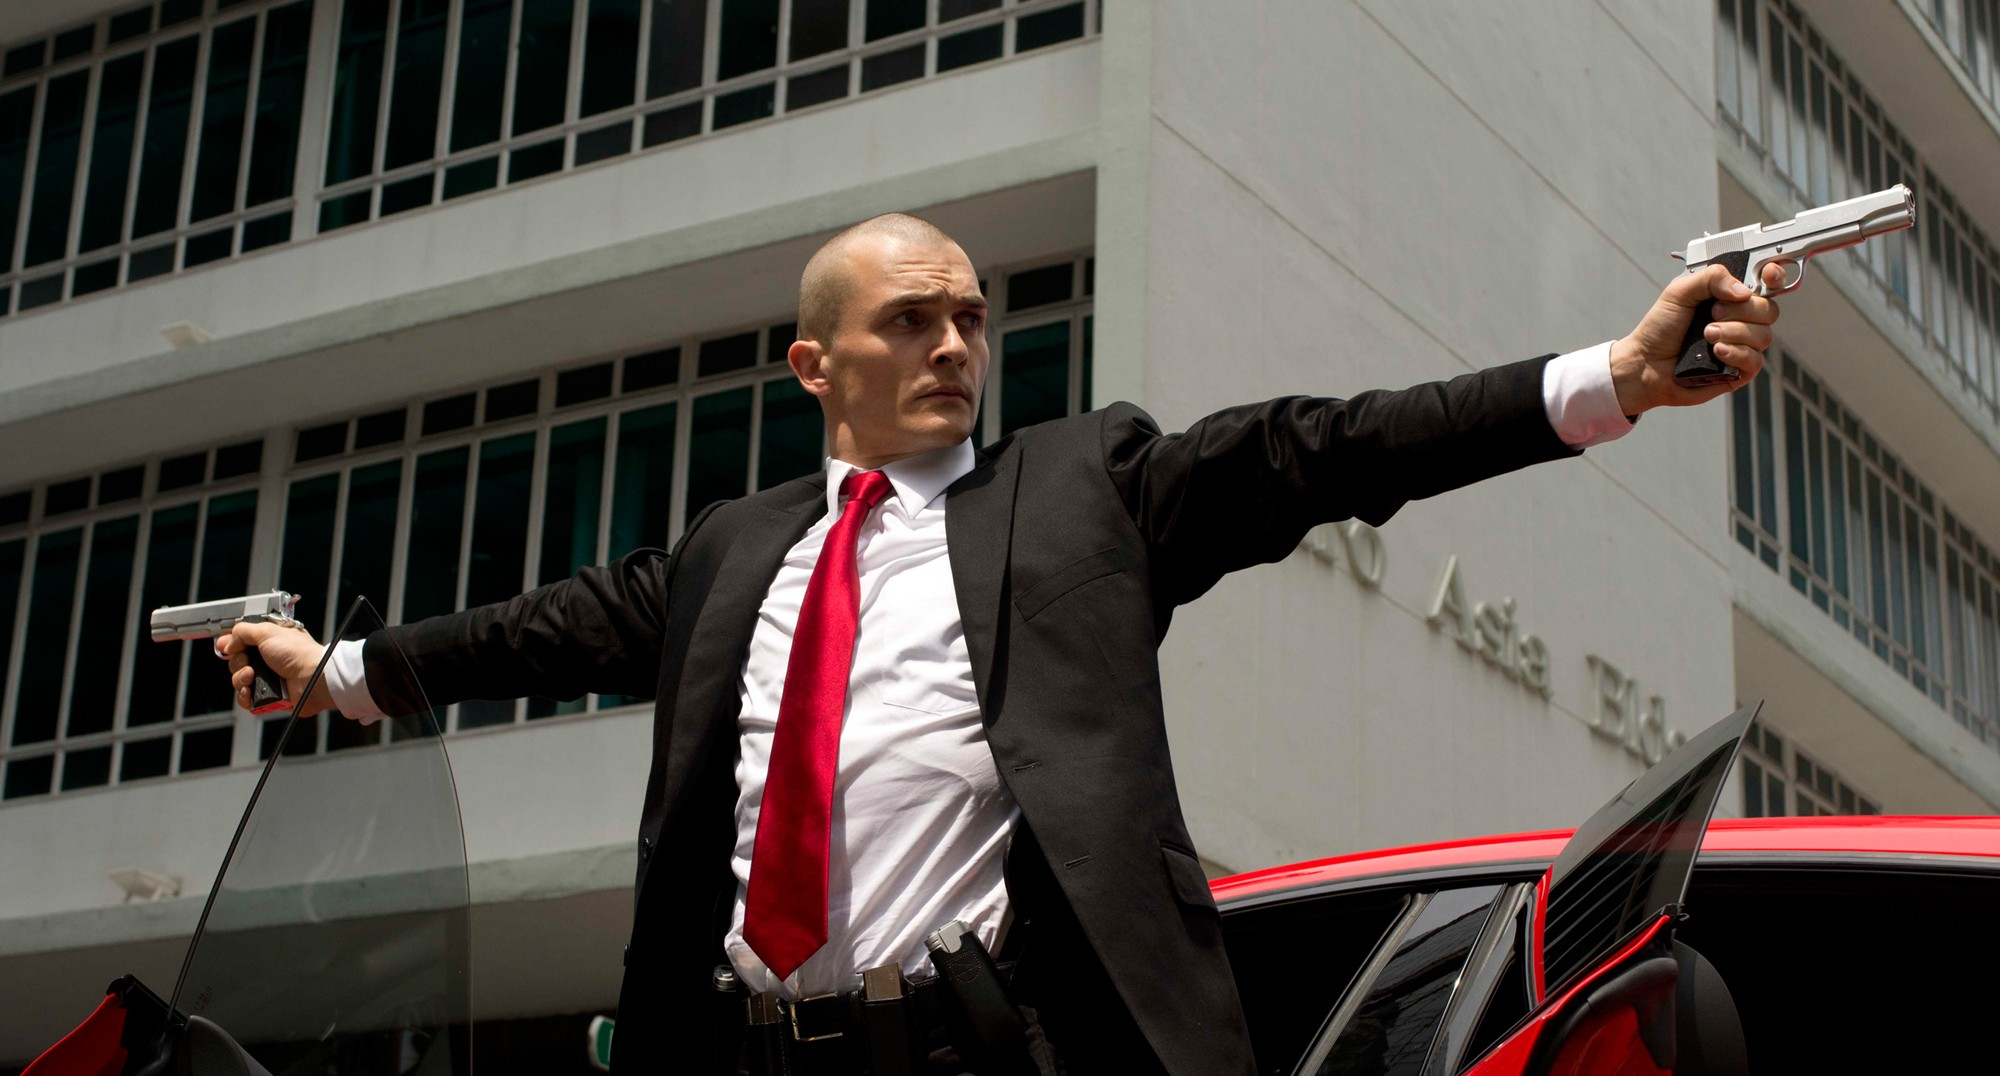 Agent 47 is Back with a brand new Hitman Movie [TRAILER]